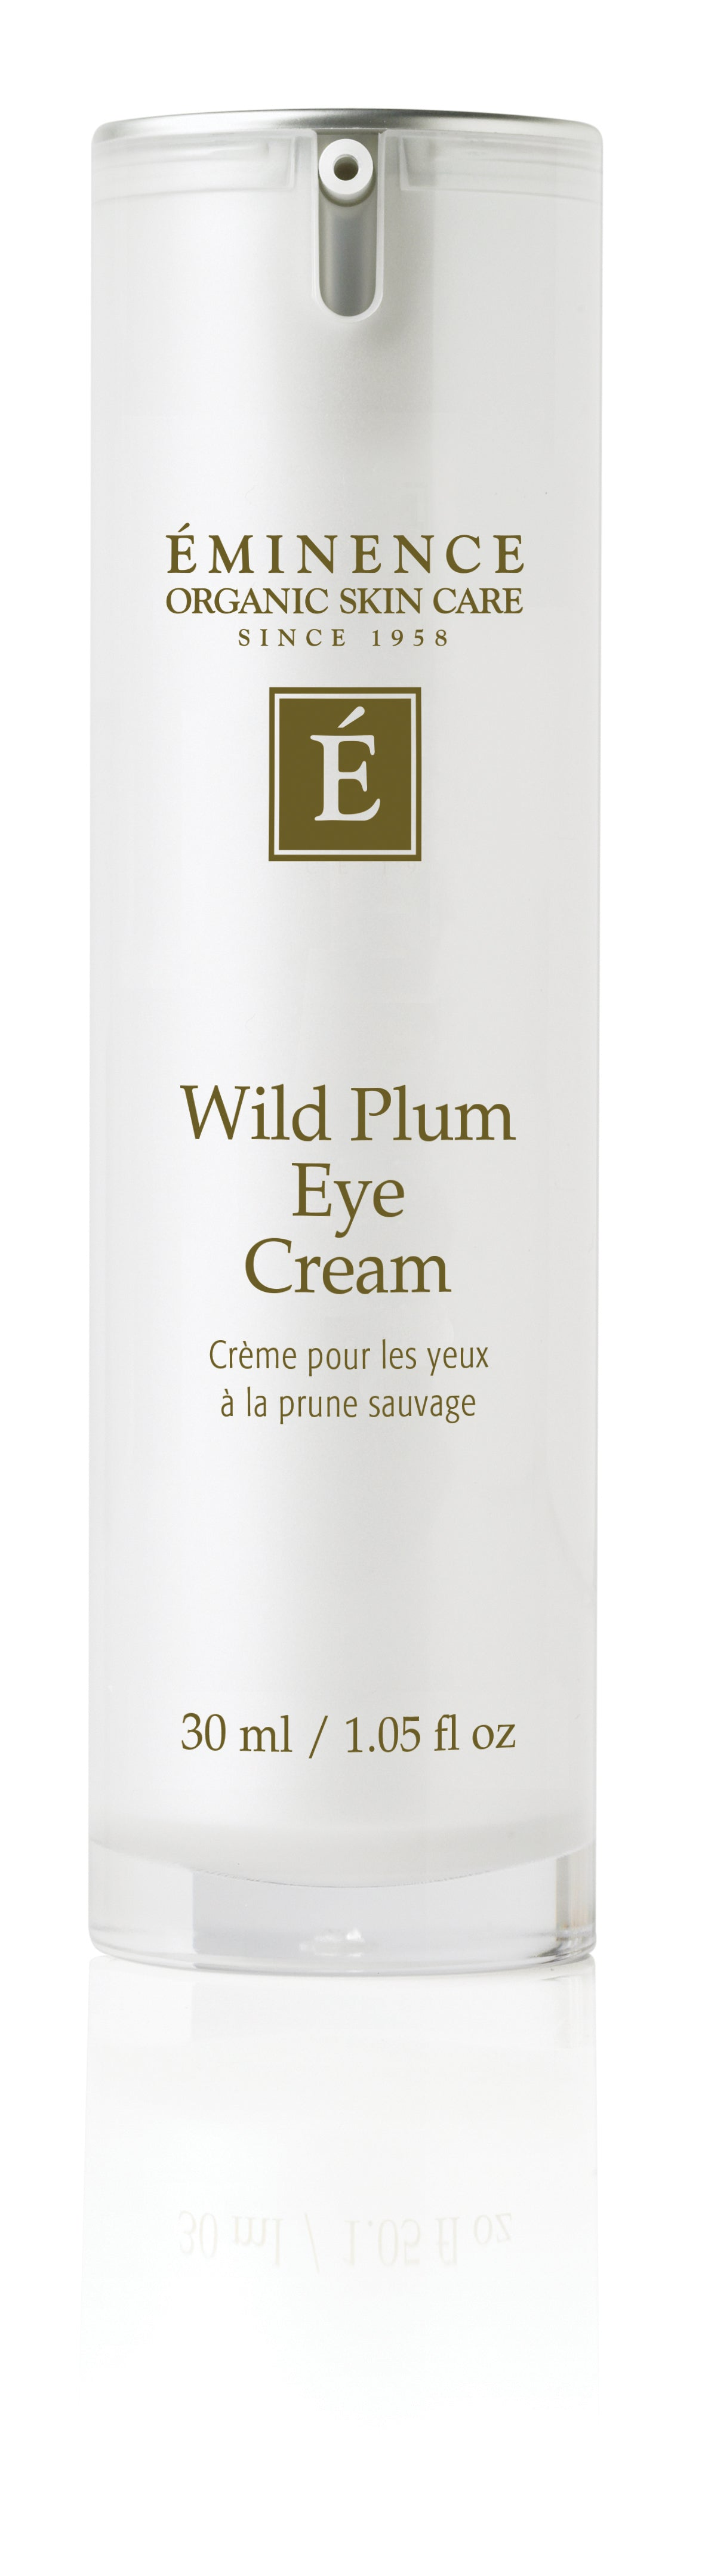 Eminence Organics Wild Plum Eye Cream